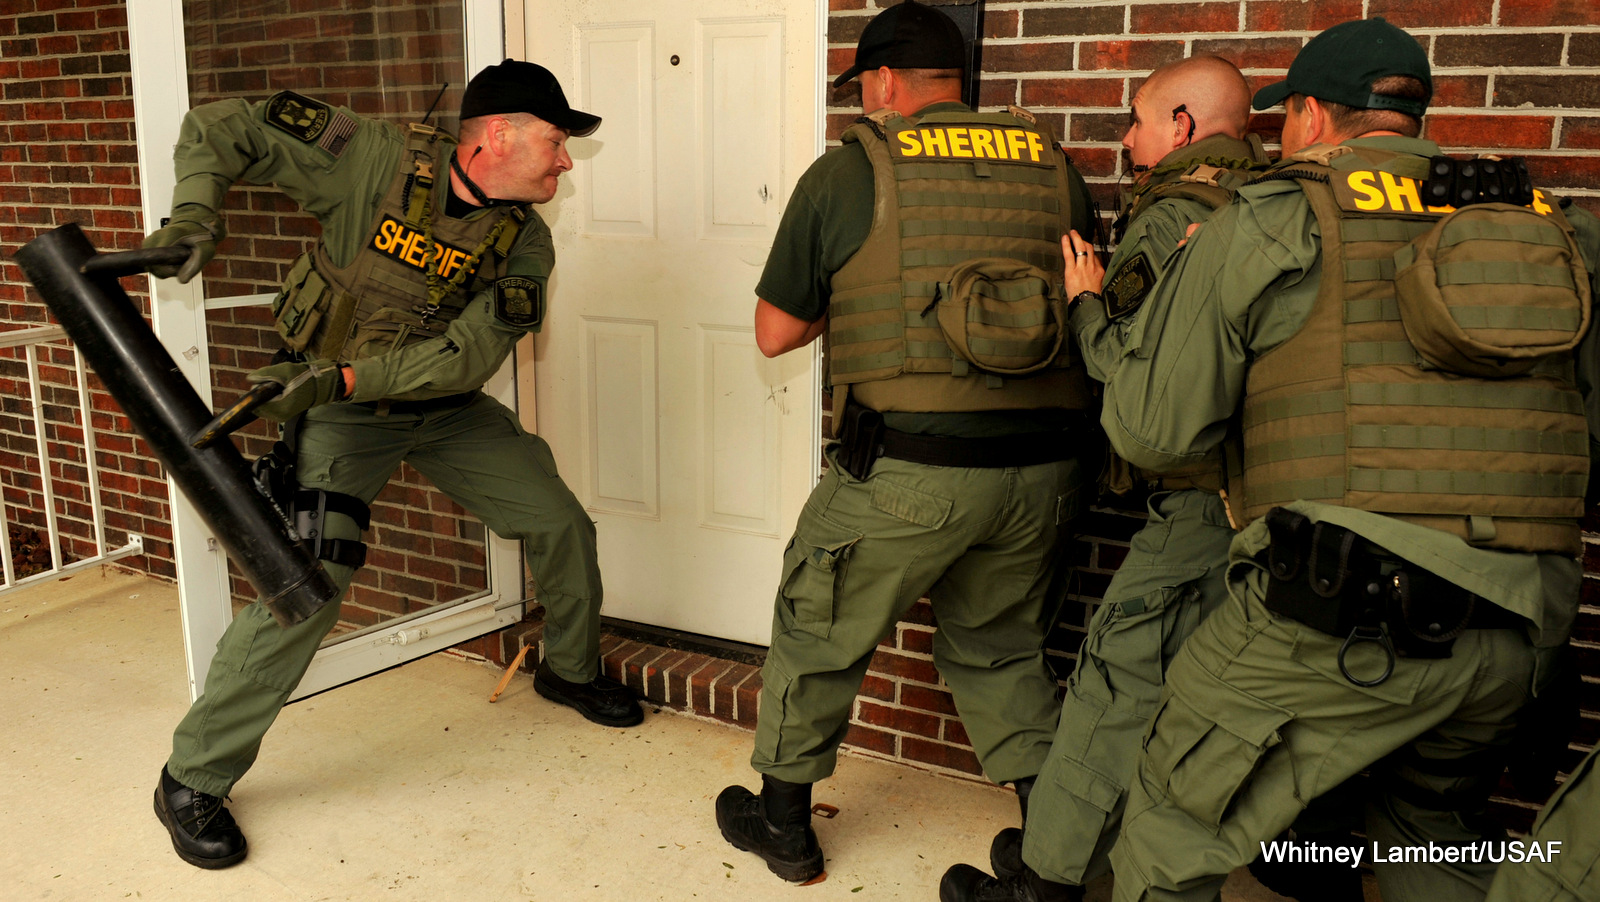 A Duplin County Sheriff's Office special response team prepares to shatter a door, and presumably it's owners 4th Amendment rights, during a training exercise.